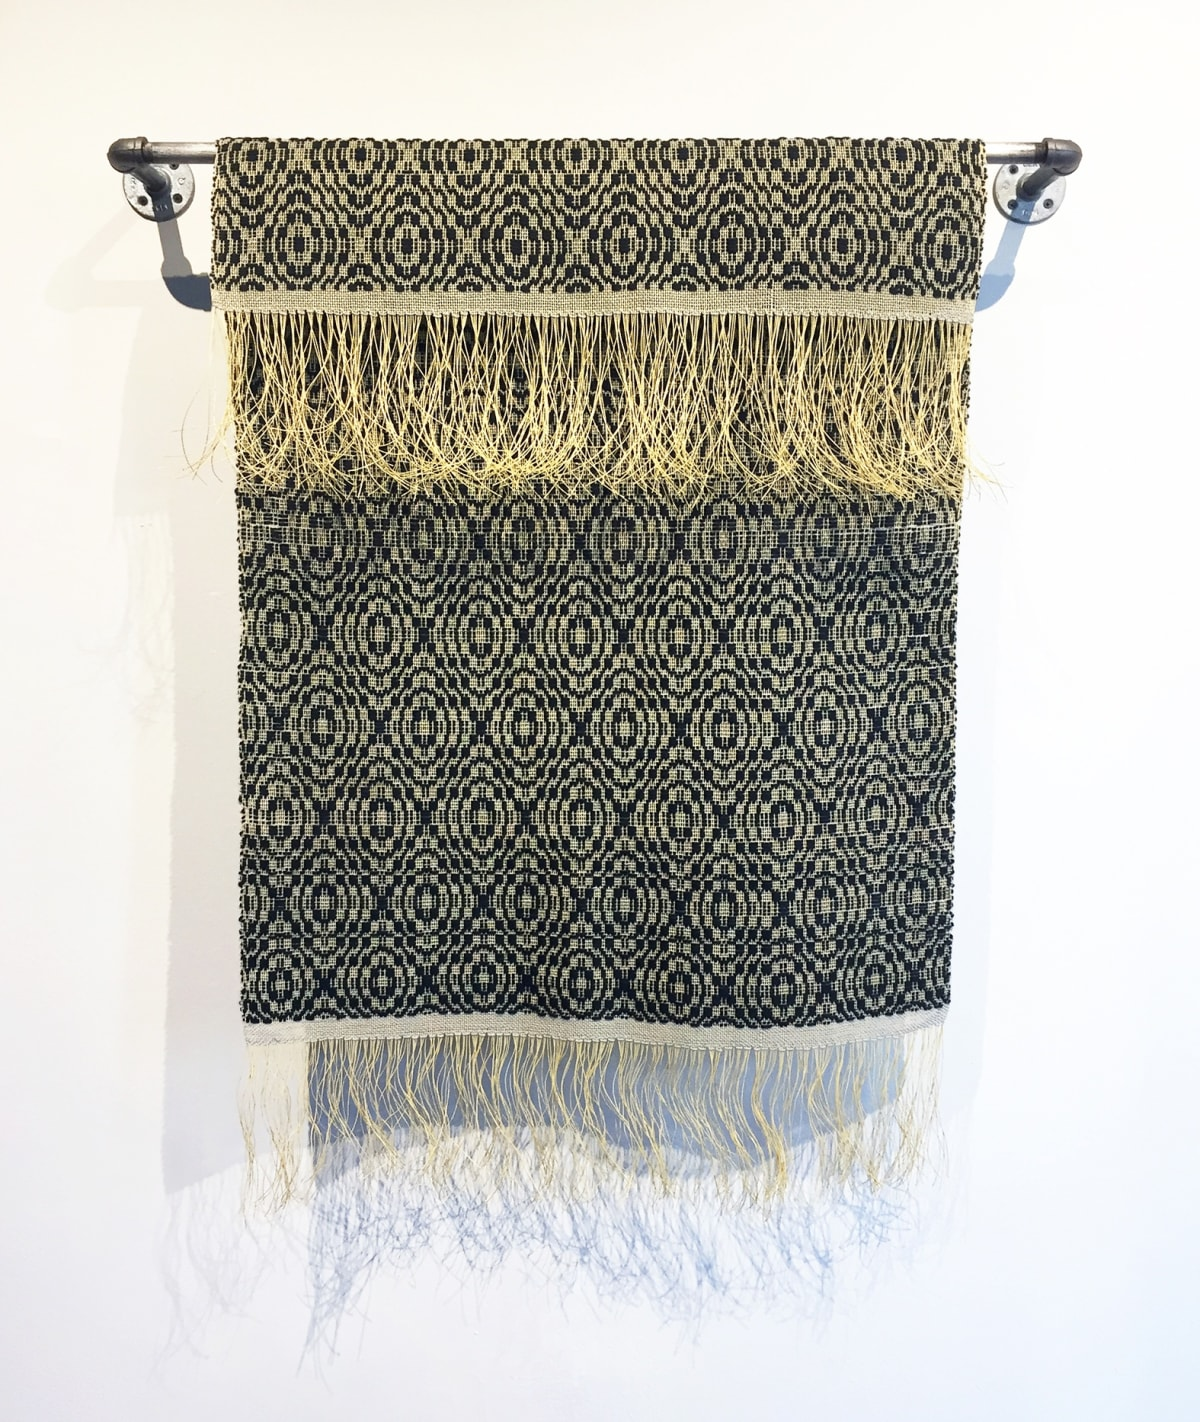 Erika Diamond Overshot Safety Blanket (lapghan) - from Imminent Peril